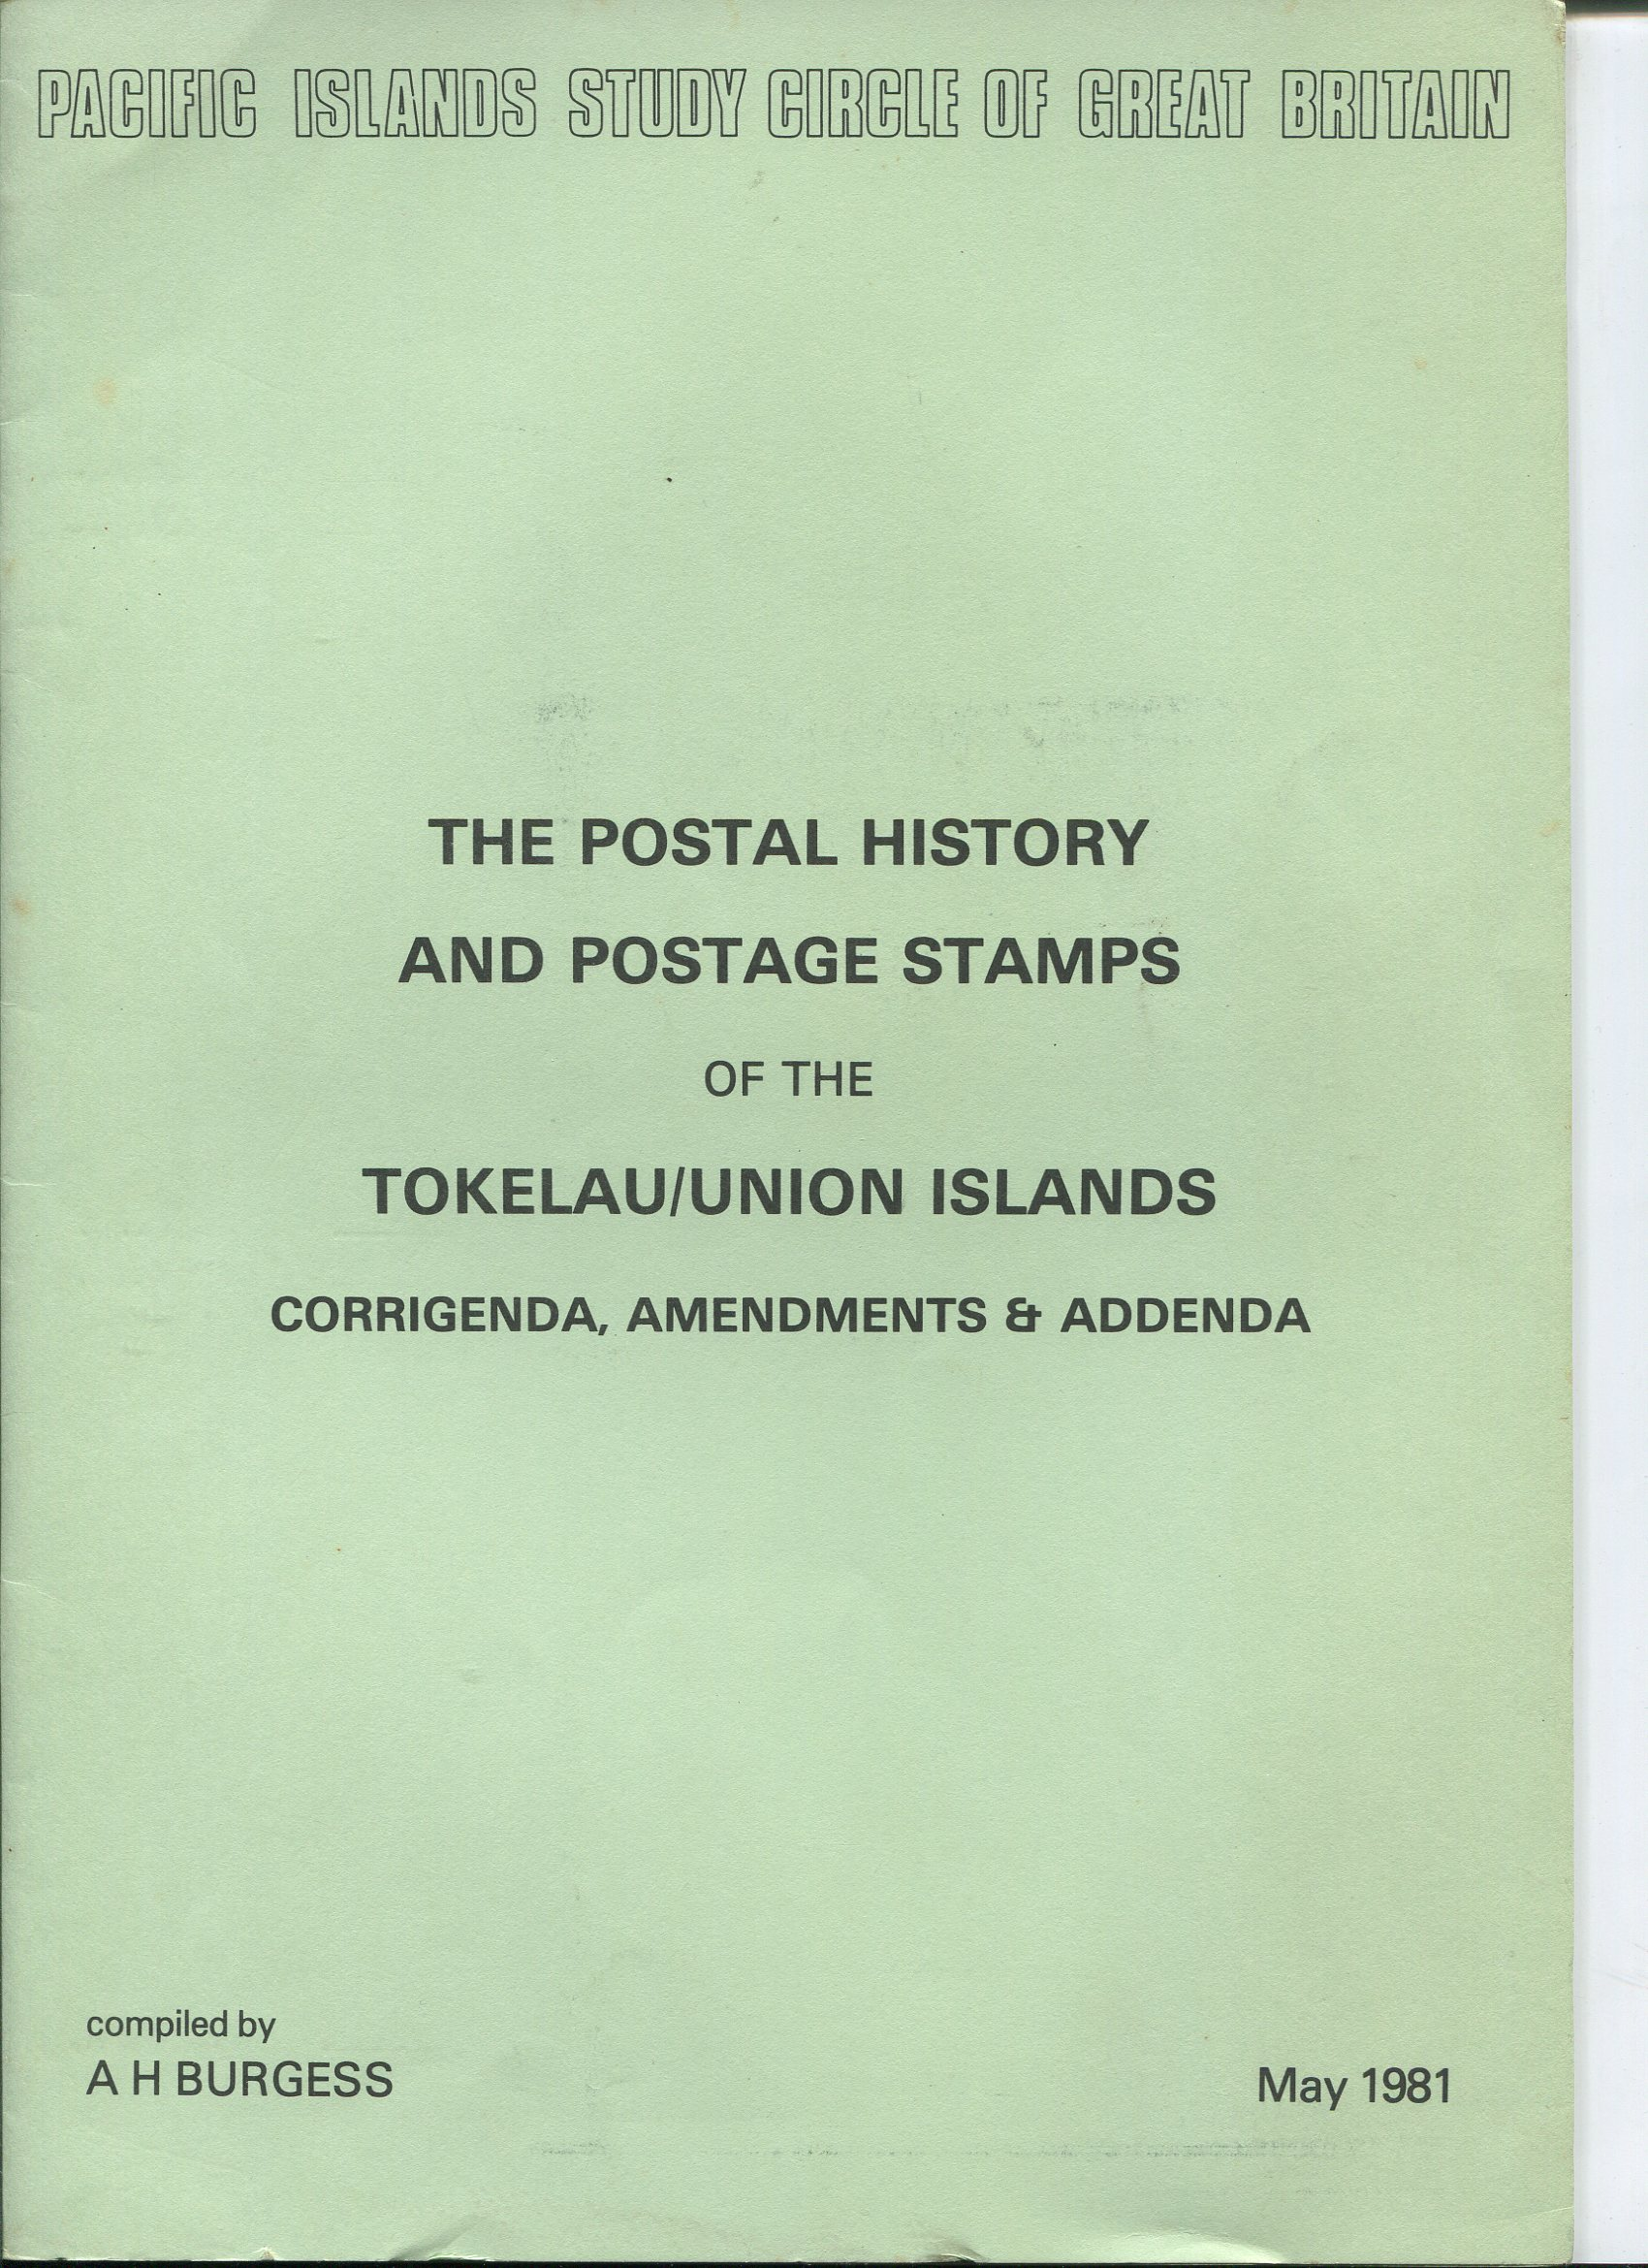 BURGESS A.H. The Postal History and Postage Stamps of the Tokelau/Union Islands.